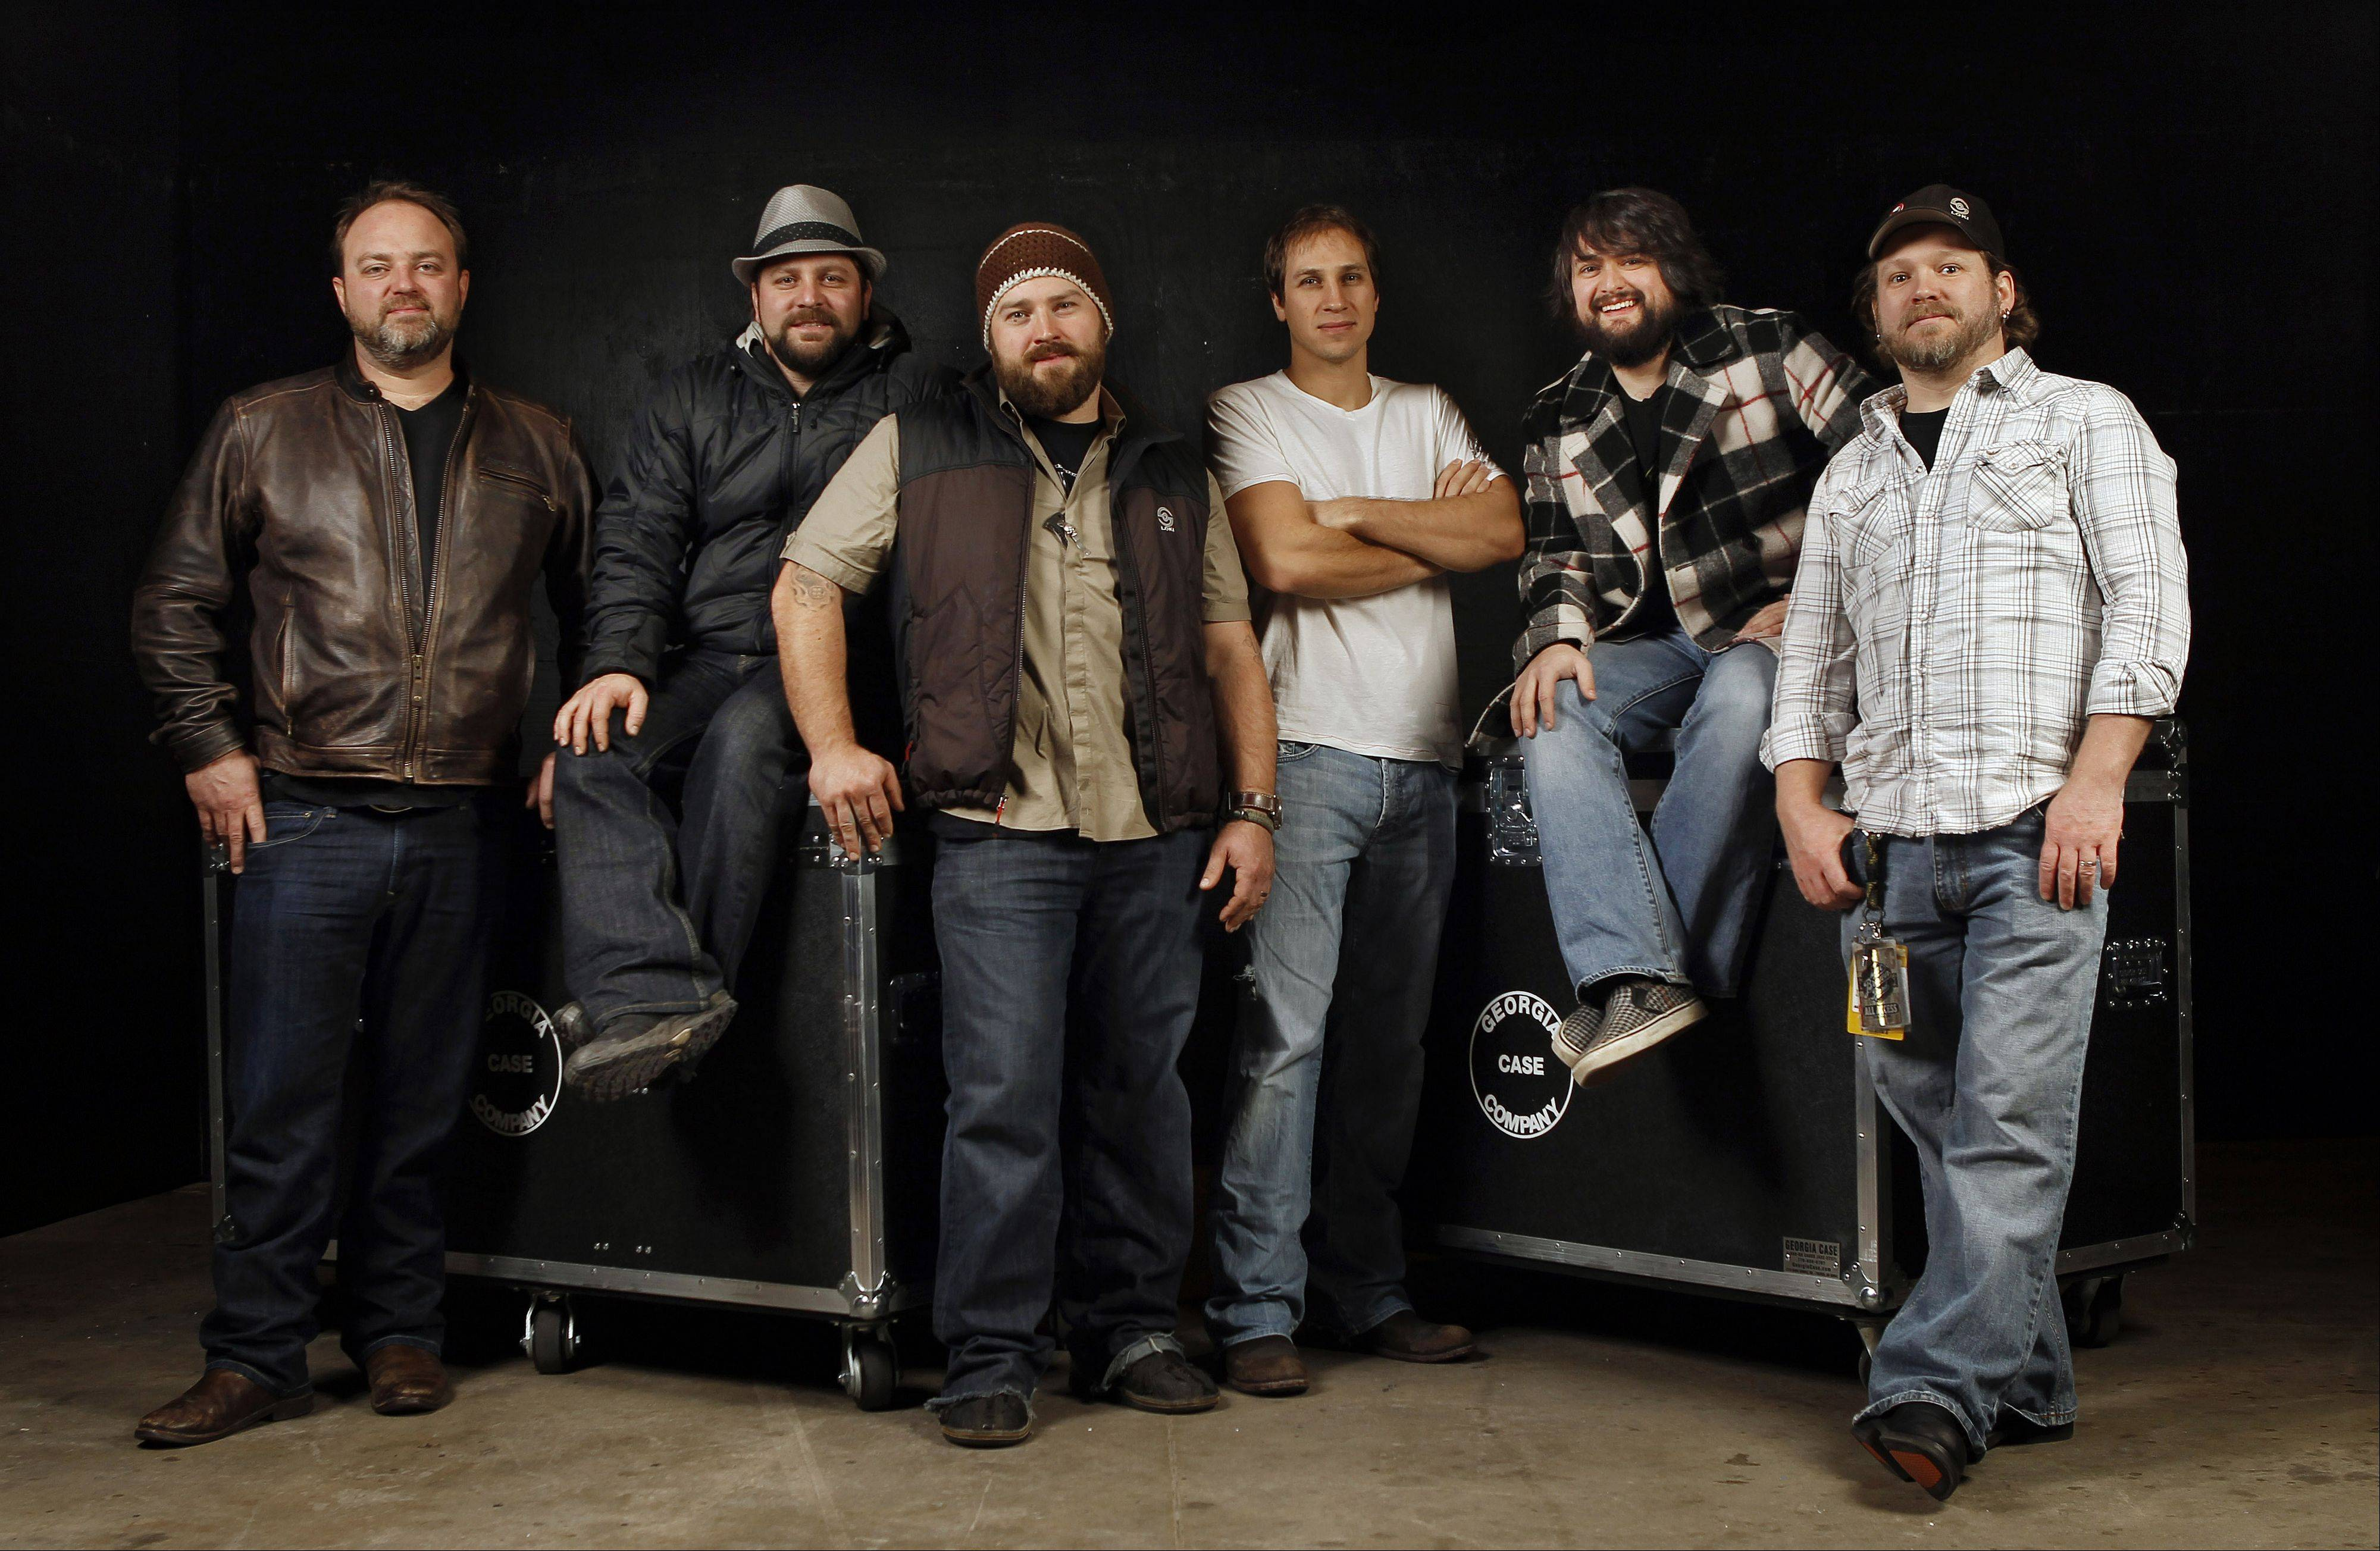 The Zac Brown Band, has teamed up with Dave Grohl for their newest EP, �The Grohl Sessions Vol. 1.�